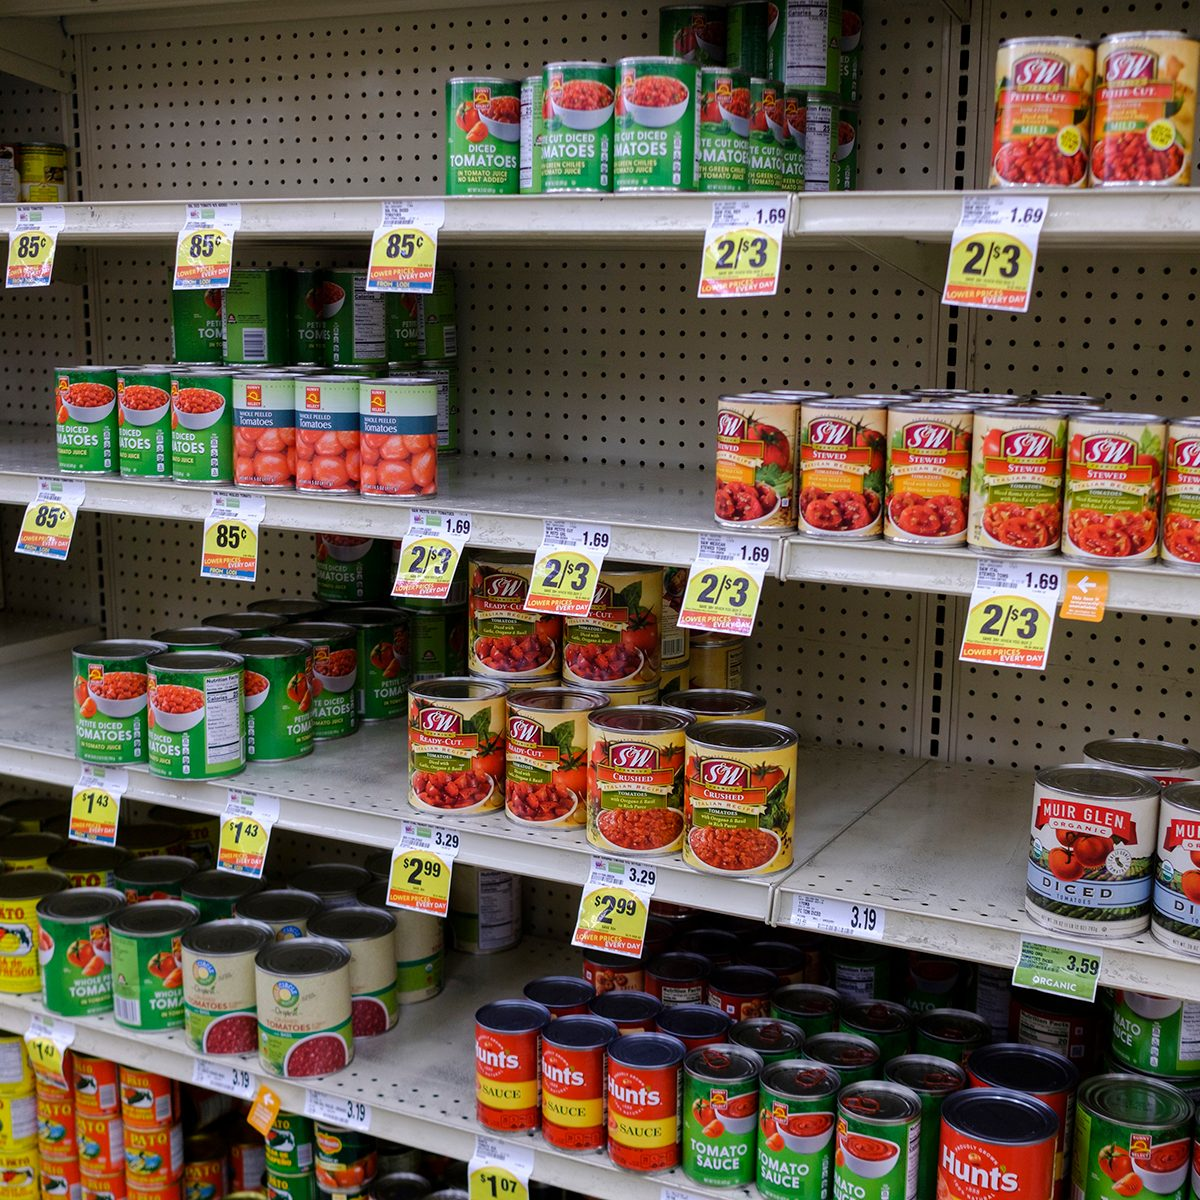 Shelf of canned food half empty